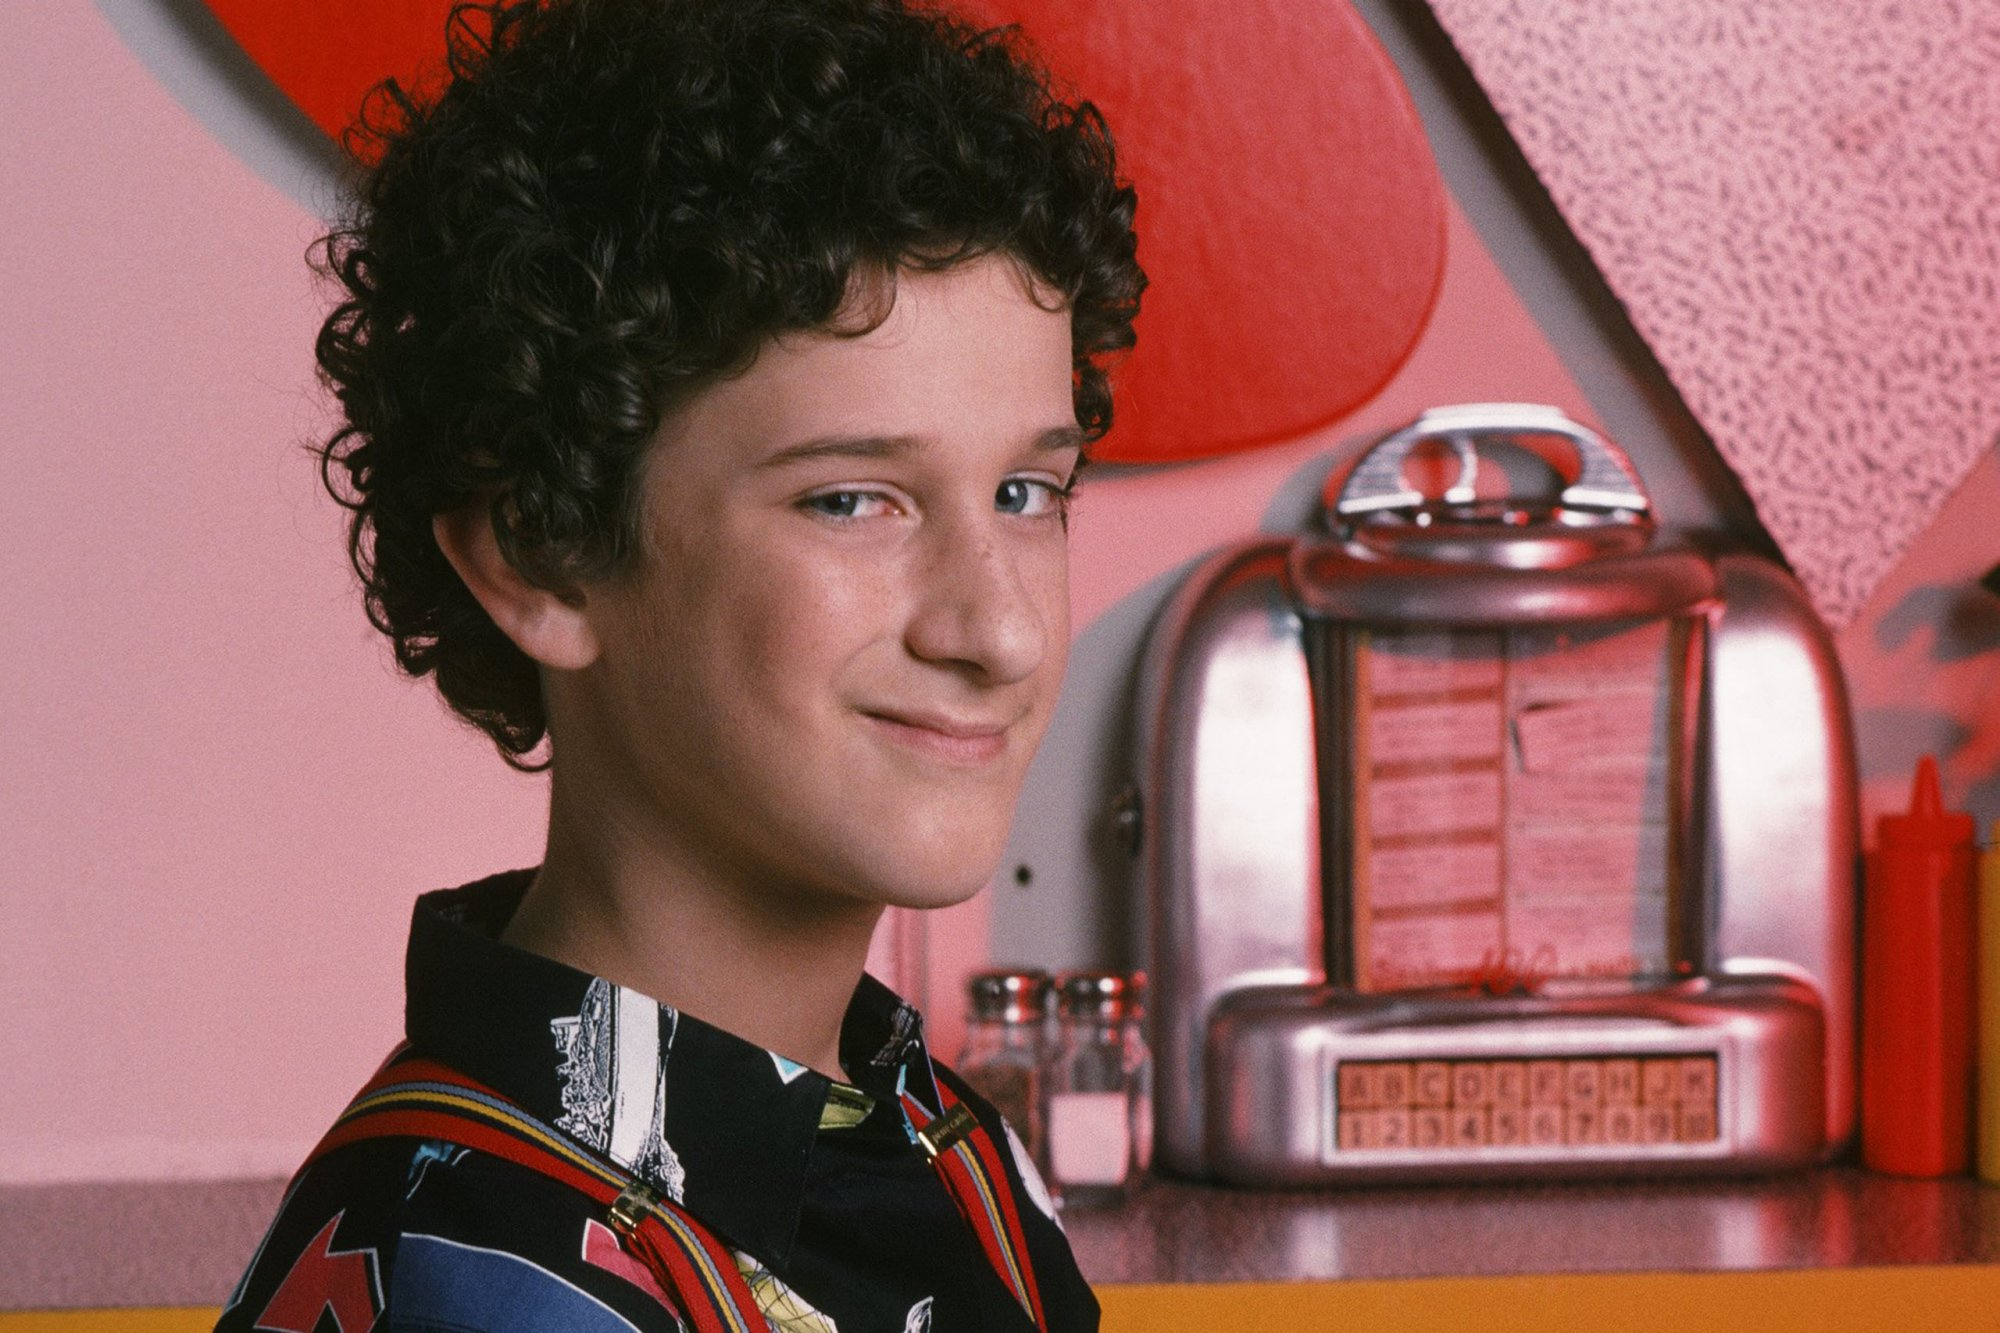 Dustin Diamond Screensavers